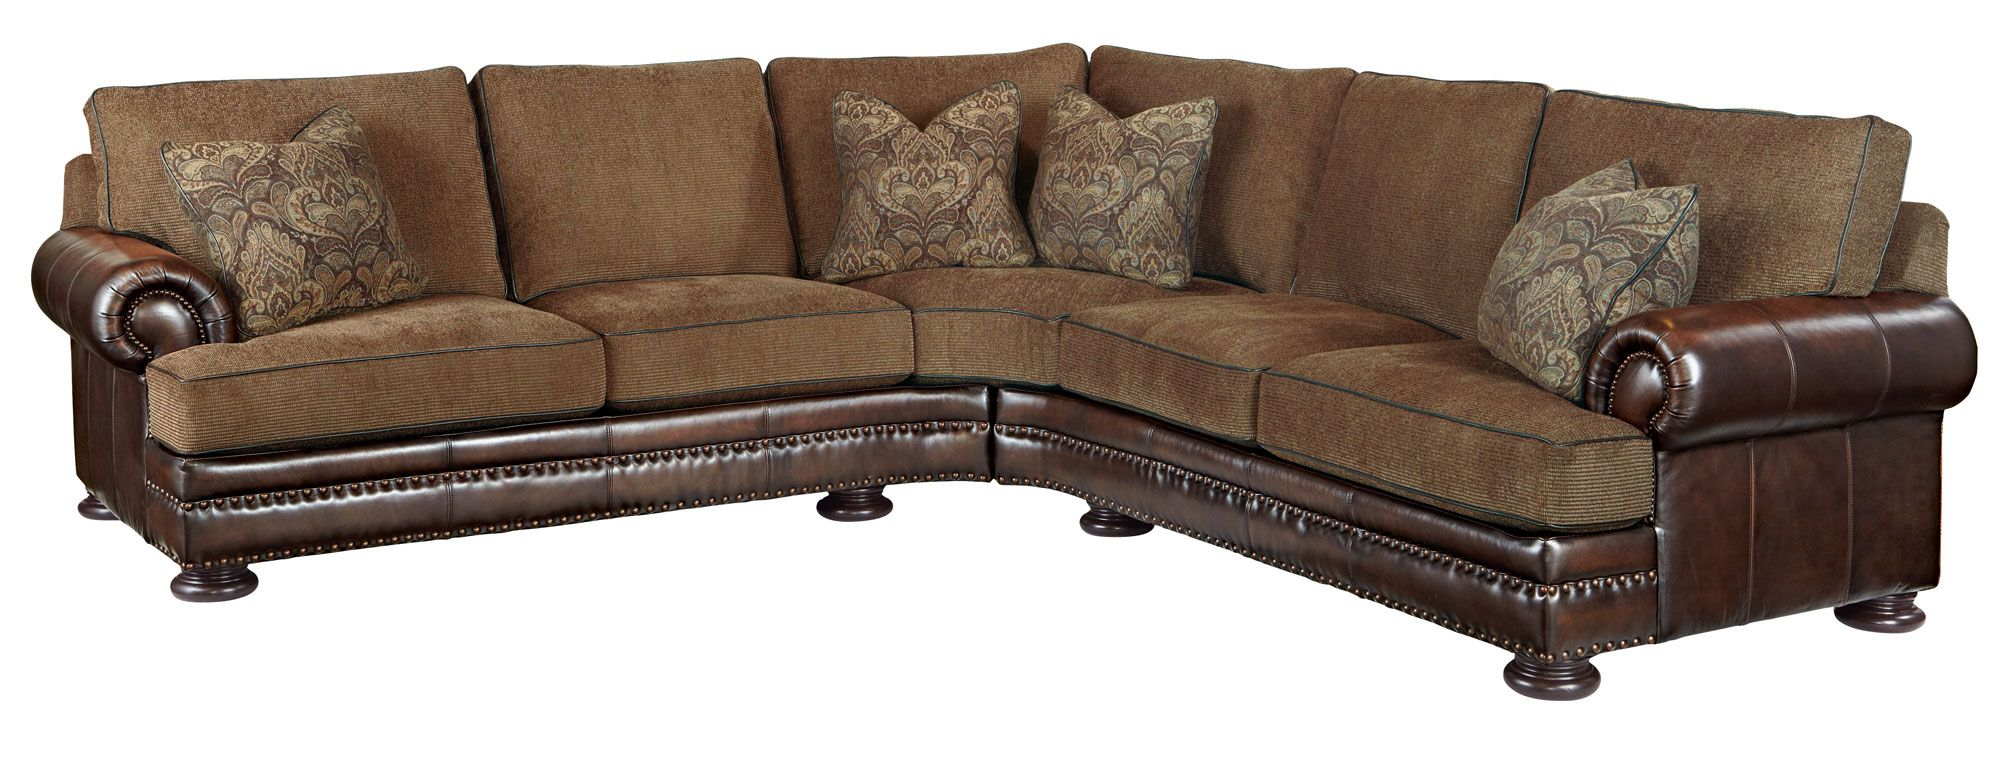 Traditional sectional l shaped sofa design ideas for living room furniture with sweet brown leather sofa frame covers and soft brown square shaped seat